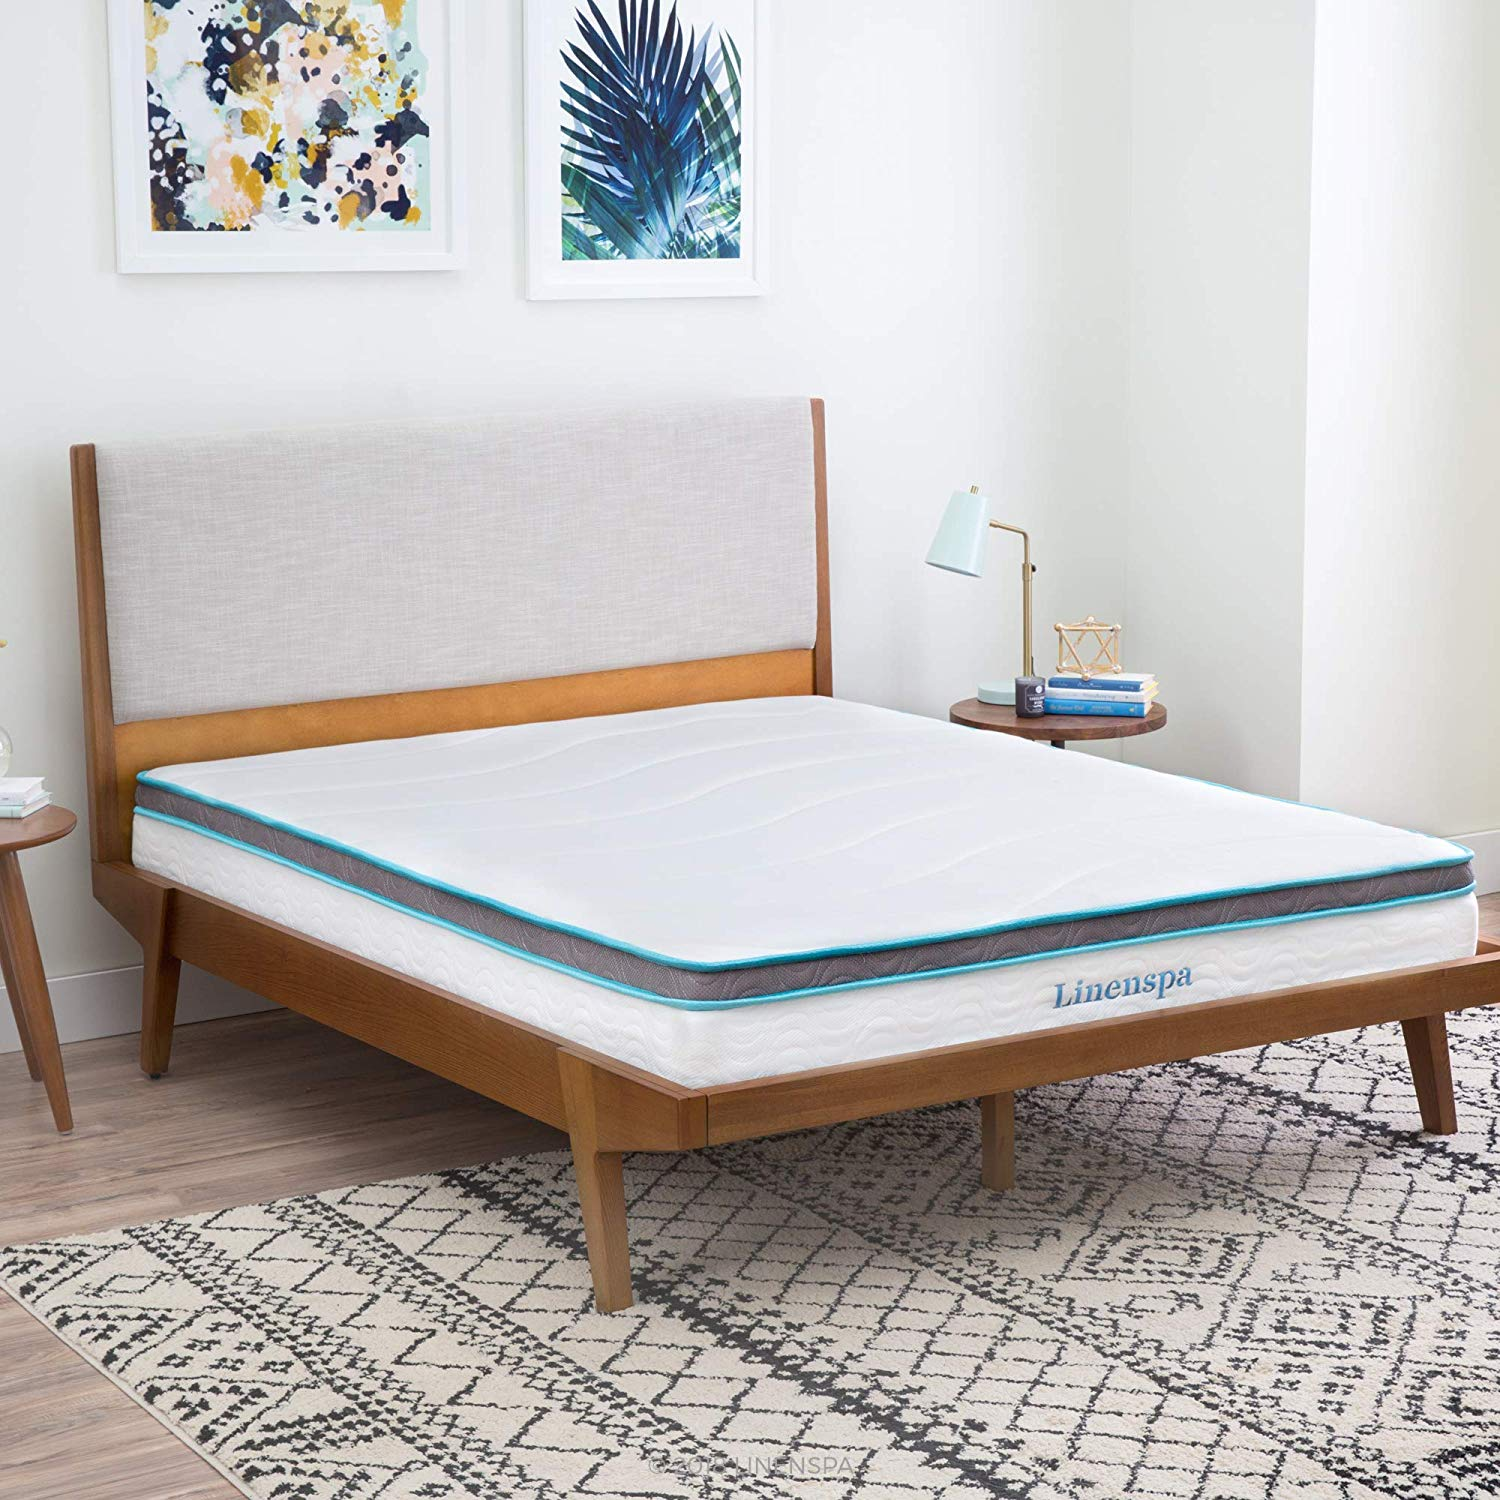 LINENSPA Best Queen Mattress Review by www.snoremagazine.com